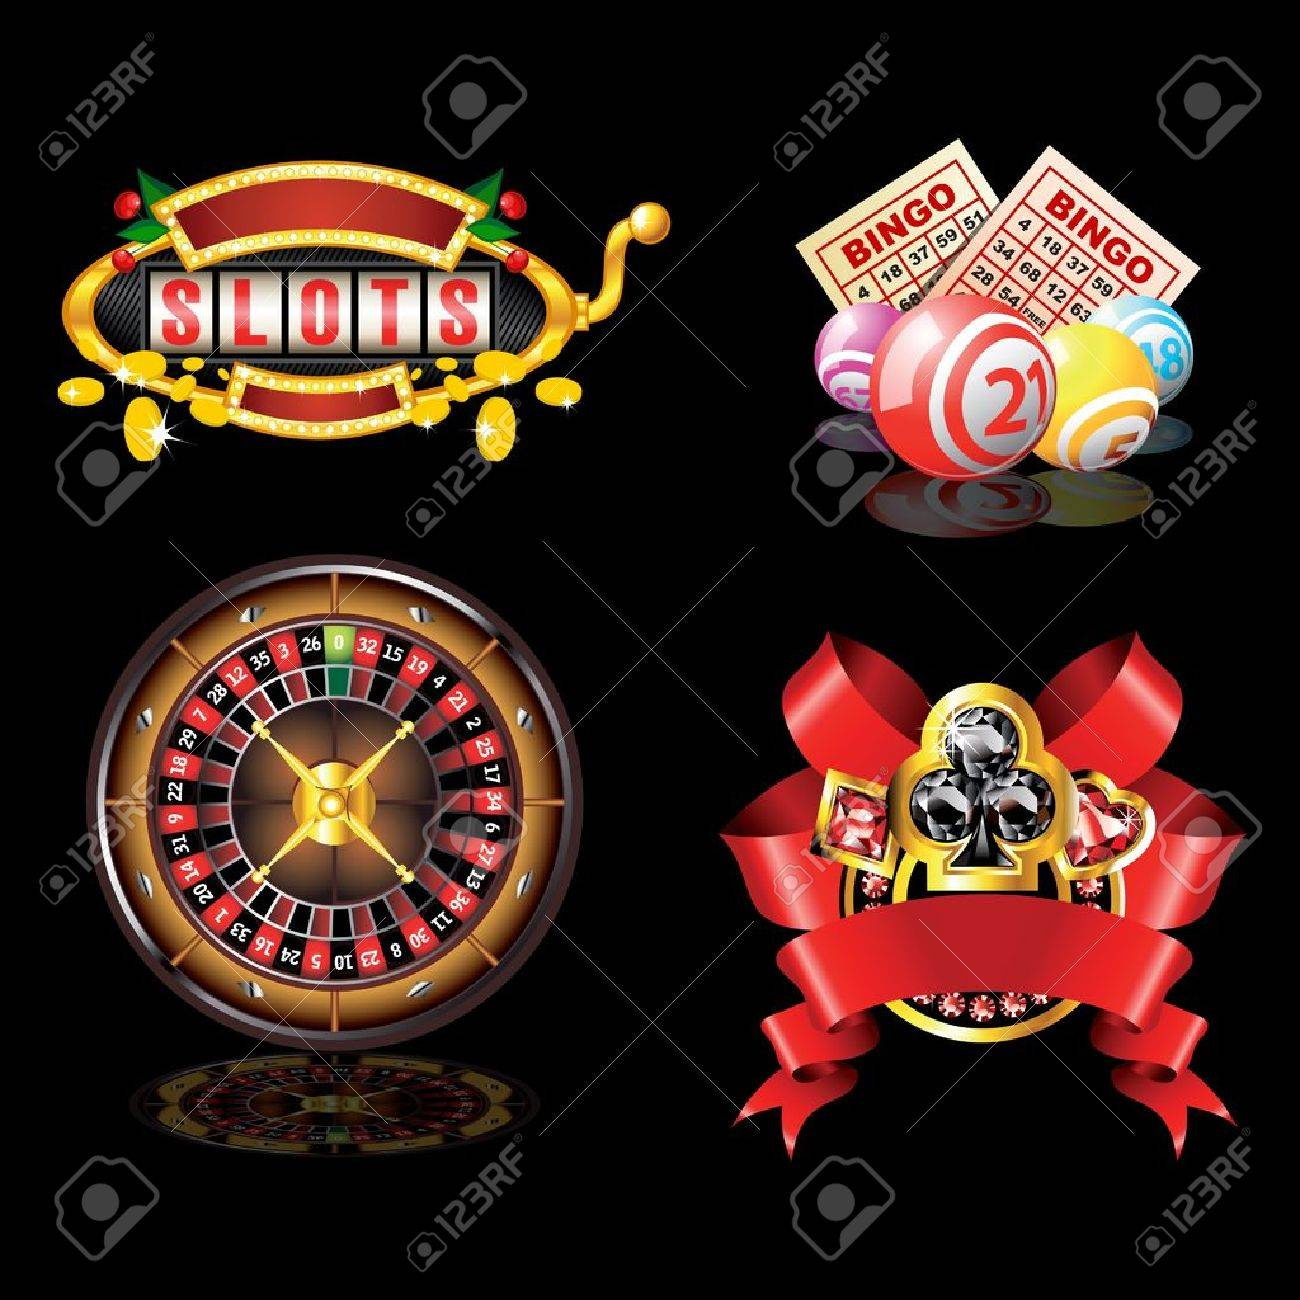 What free items can you receive from or at a Casino?